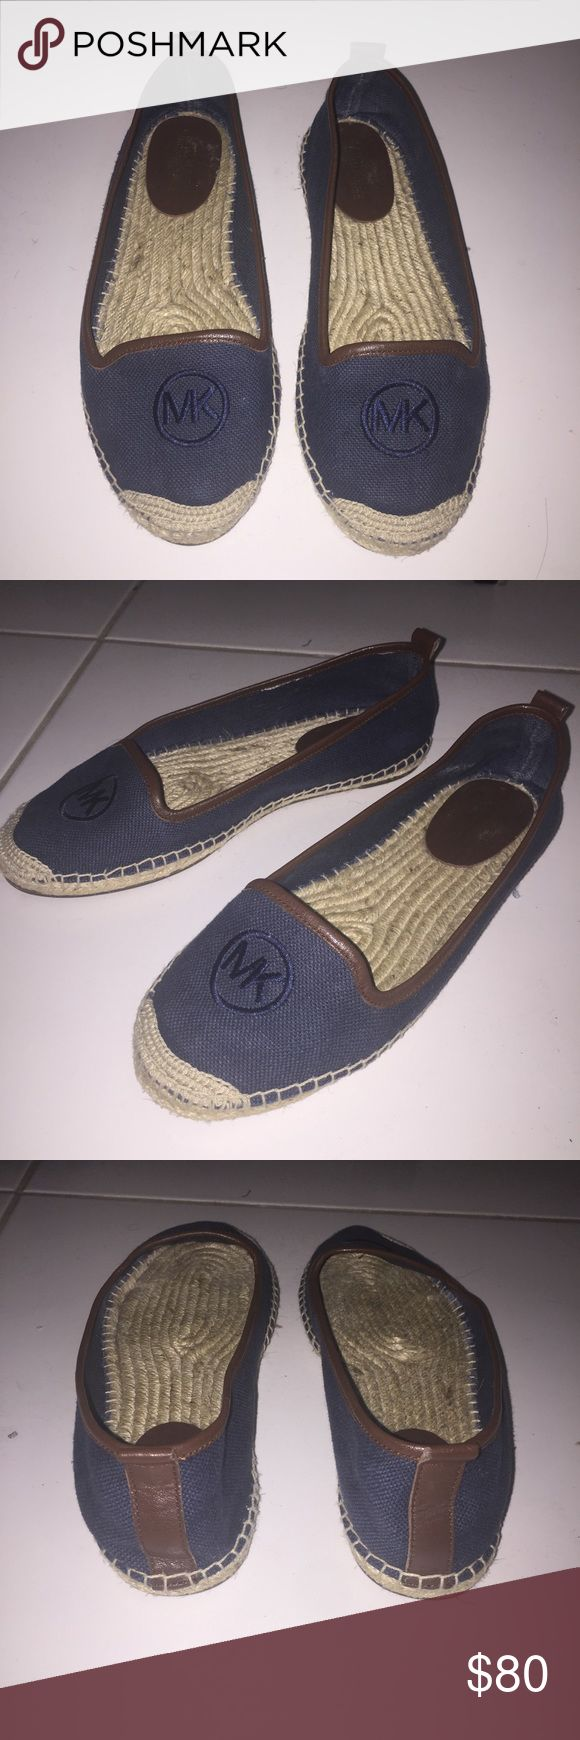 Micheal Kors Navy Espadrilles Shoes In like new condition, hardly worn! Super cute and perfect for spring! Size 7.💙🌸 KORS Michael Kors Shoes Espadrilles